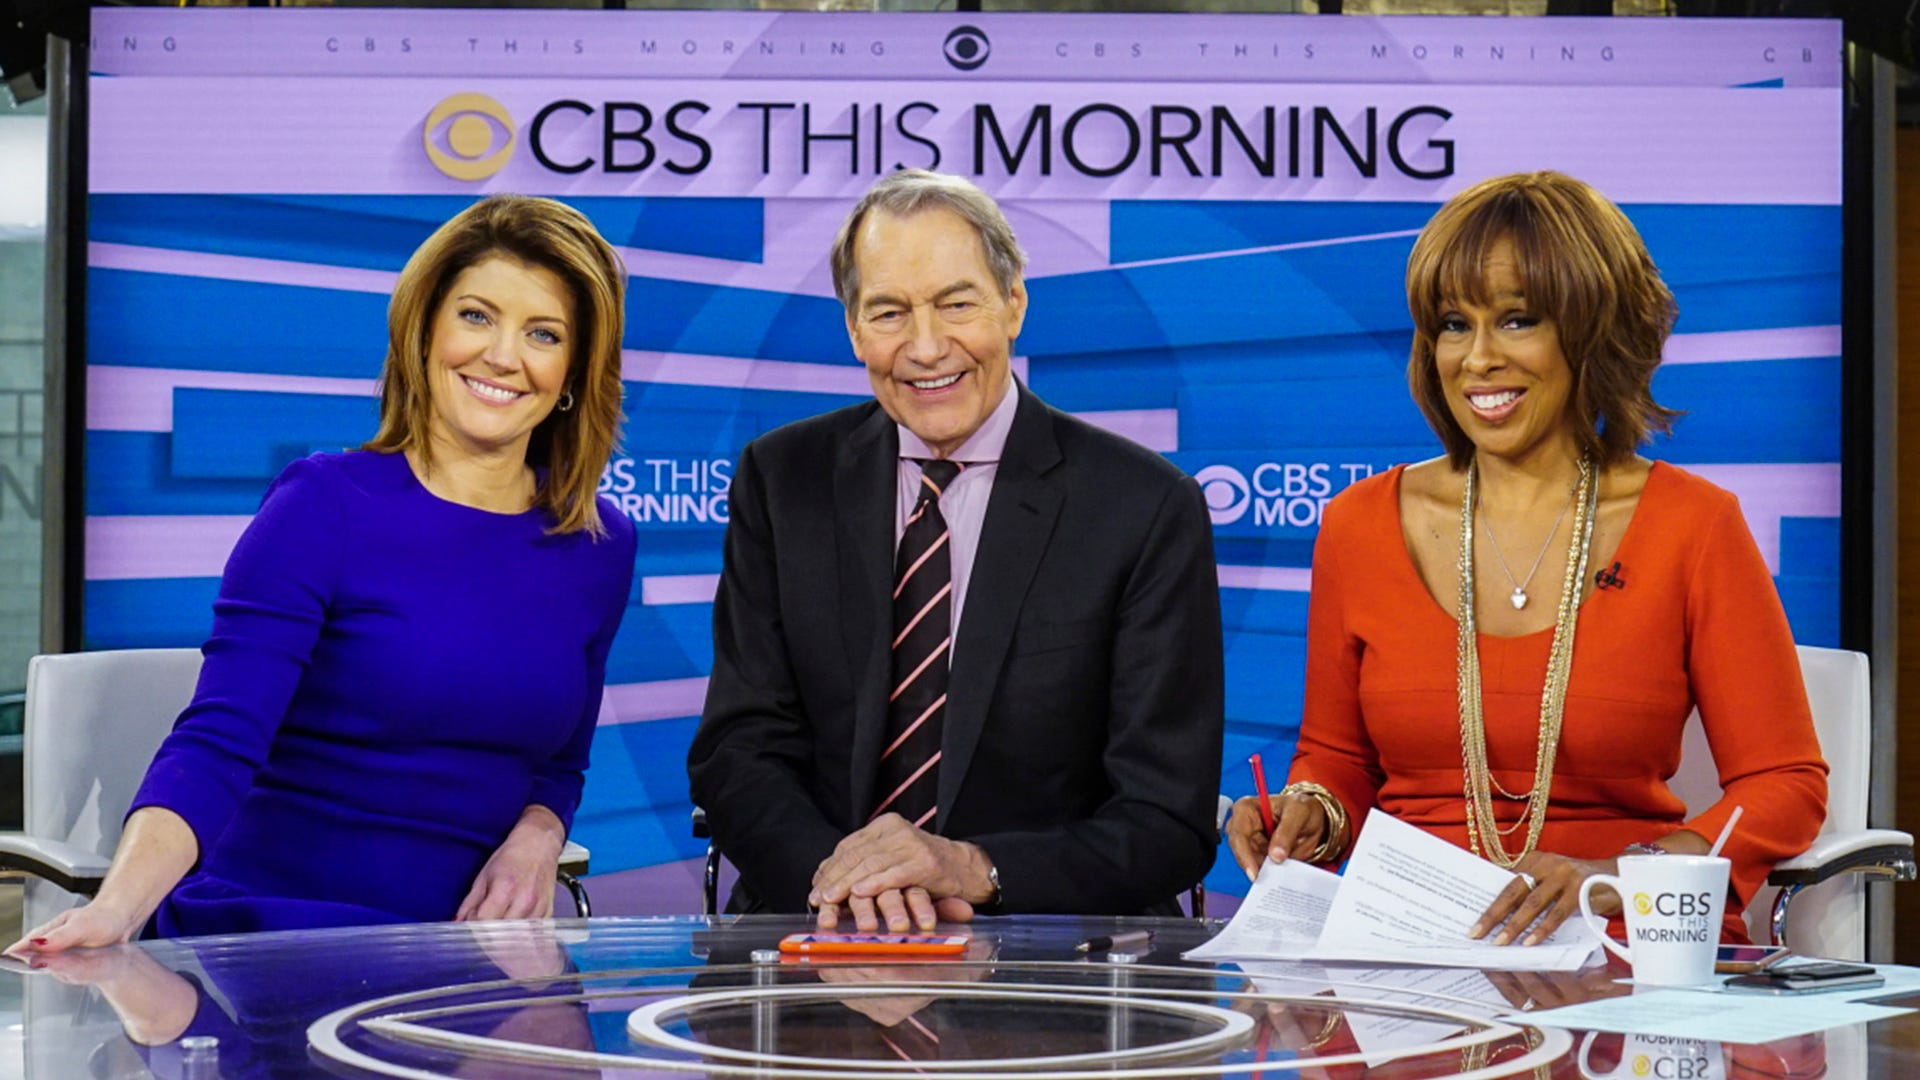 Norah O'Donnell, Charlie Rose and Gayle King, CBS This Morning